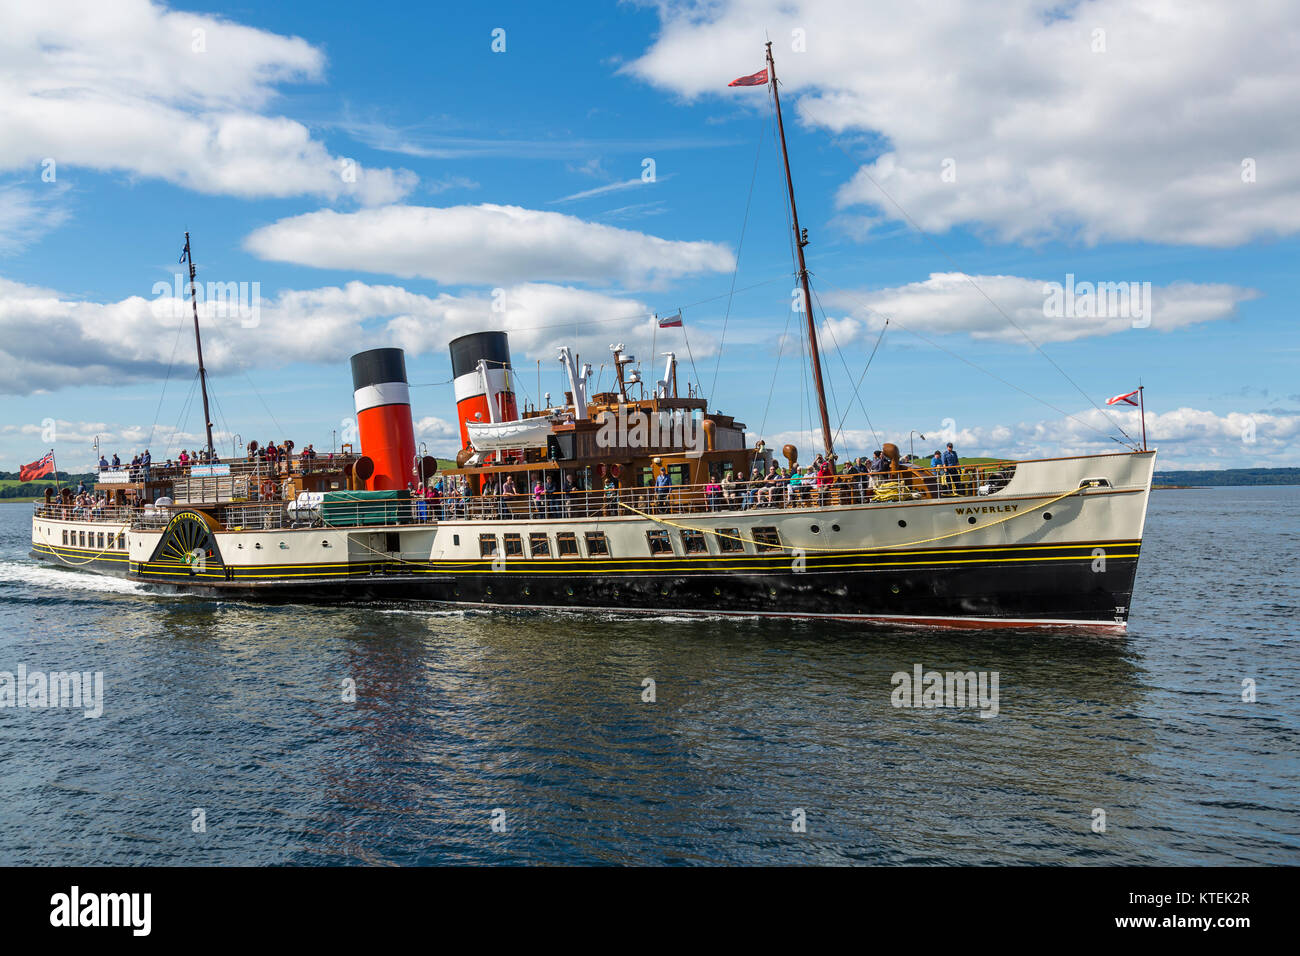 The Waverley Paddle Steamer approaching the town of Largs on the Firth of Clyde, North Ayrshire, Scotland UK - Stock Image